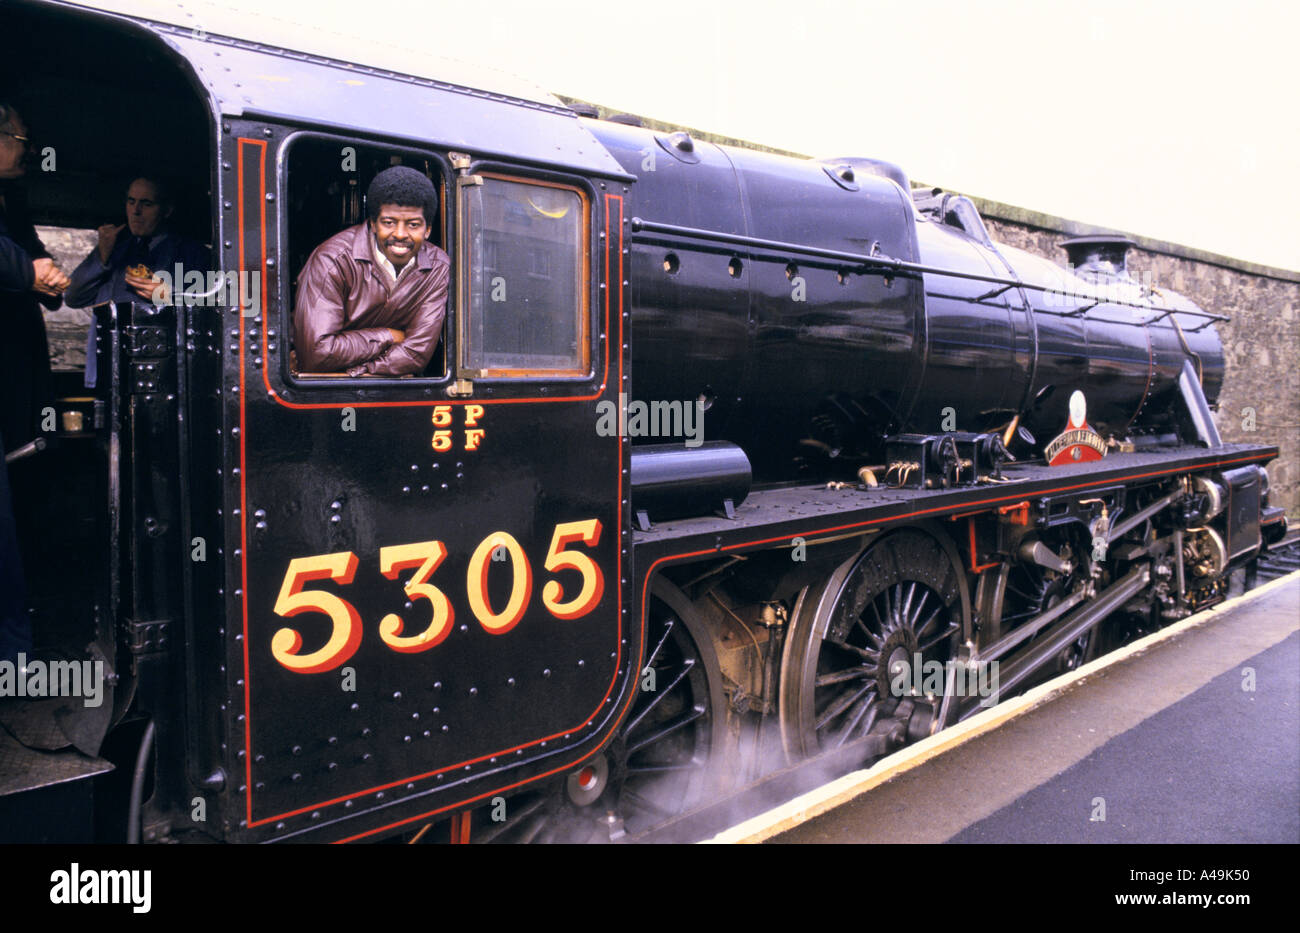 time correspondent steven holmes on the royal scotsman 1986 - Stock Image